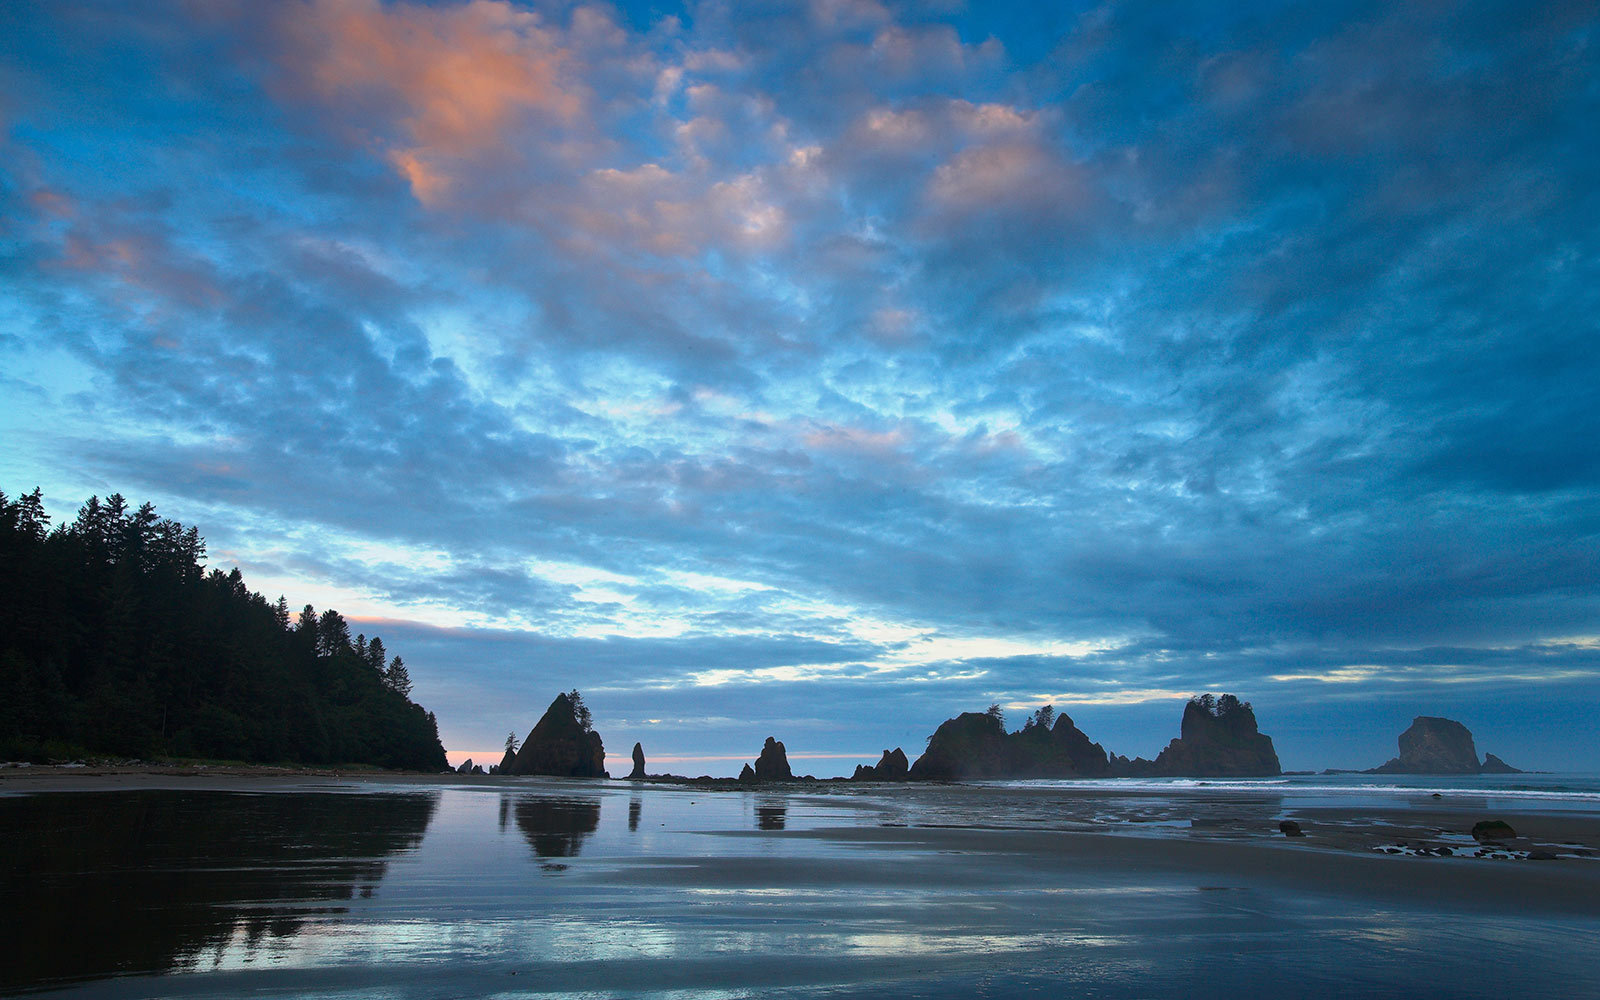 Shi Shi Beach, Washington